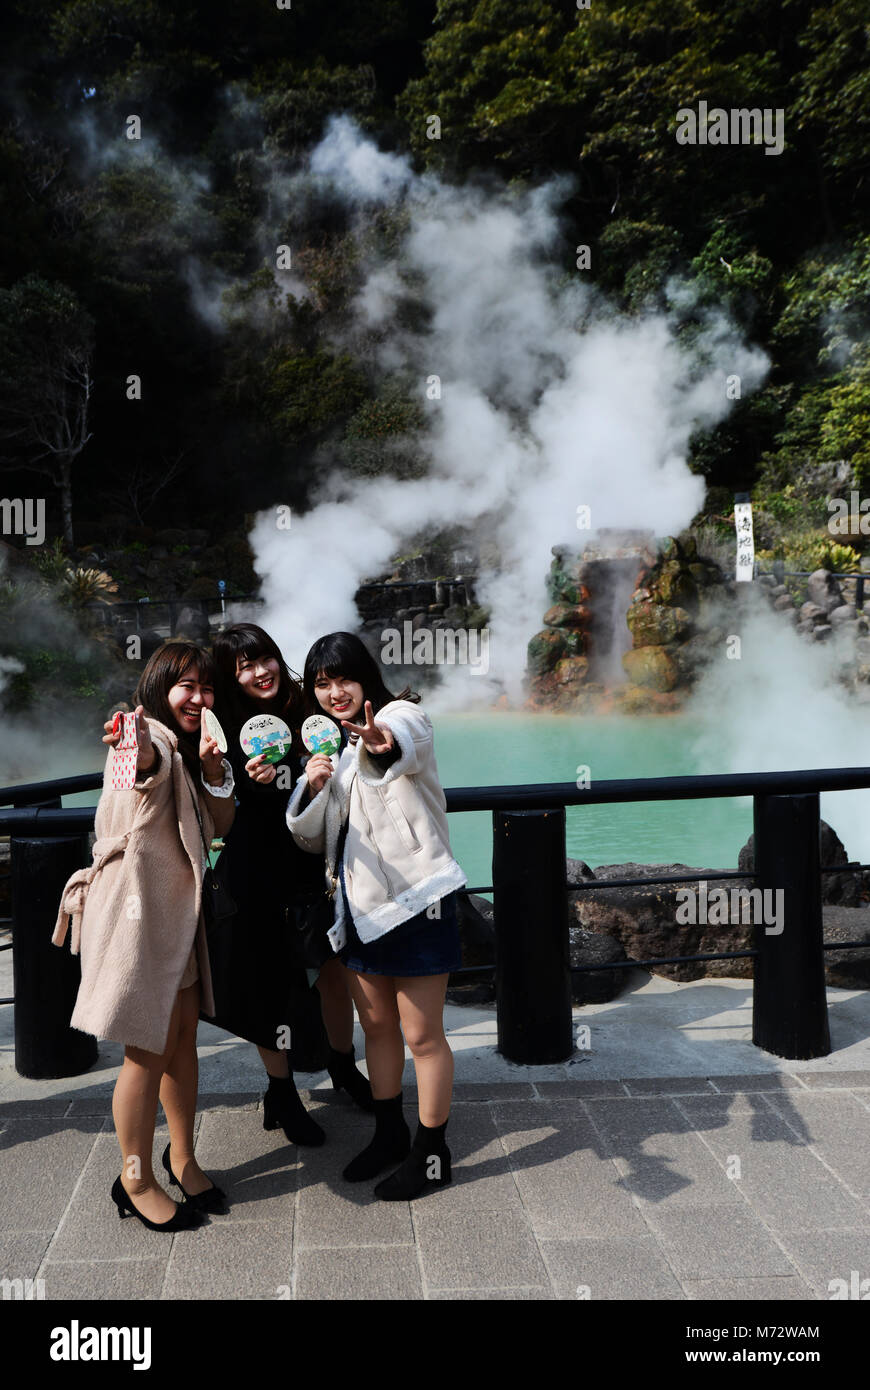 Tourist posing for a photo in front of the Umi Jigoku ( Ocean Hell ) hot spring in Beppu, Japan. - Stock Image